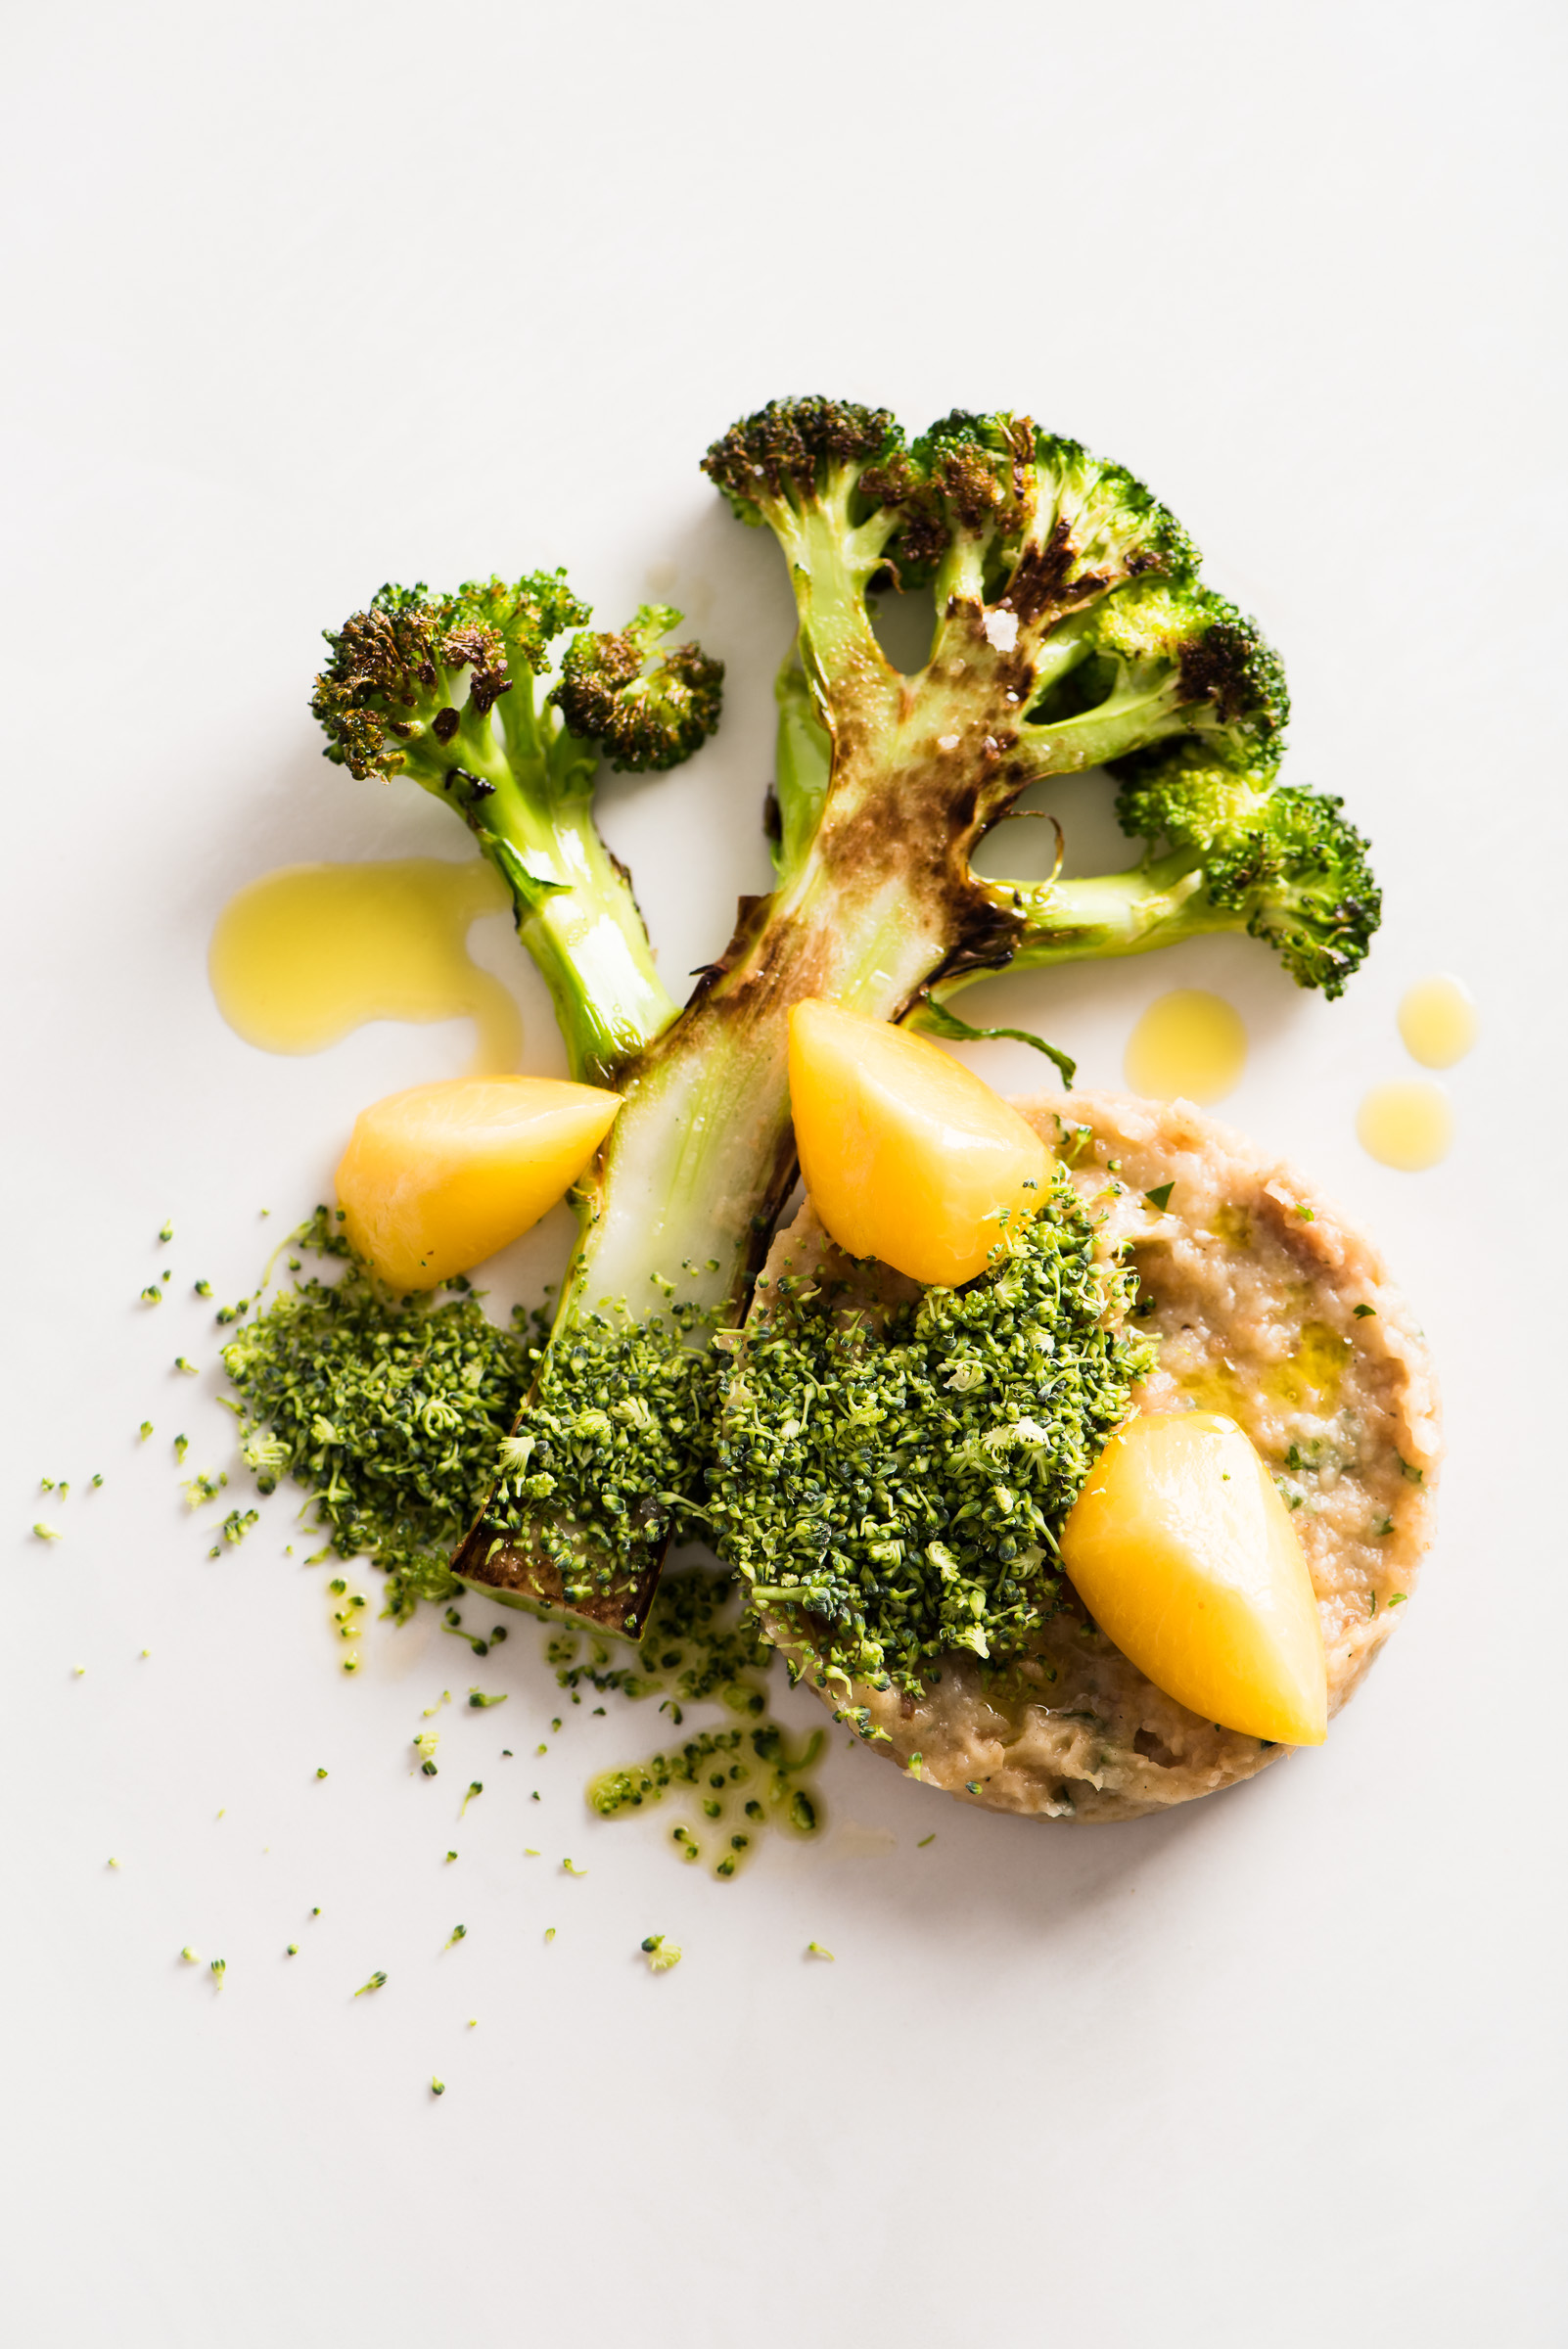 migas-roasted-broccoli-and-pickled-plums